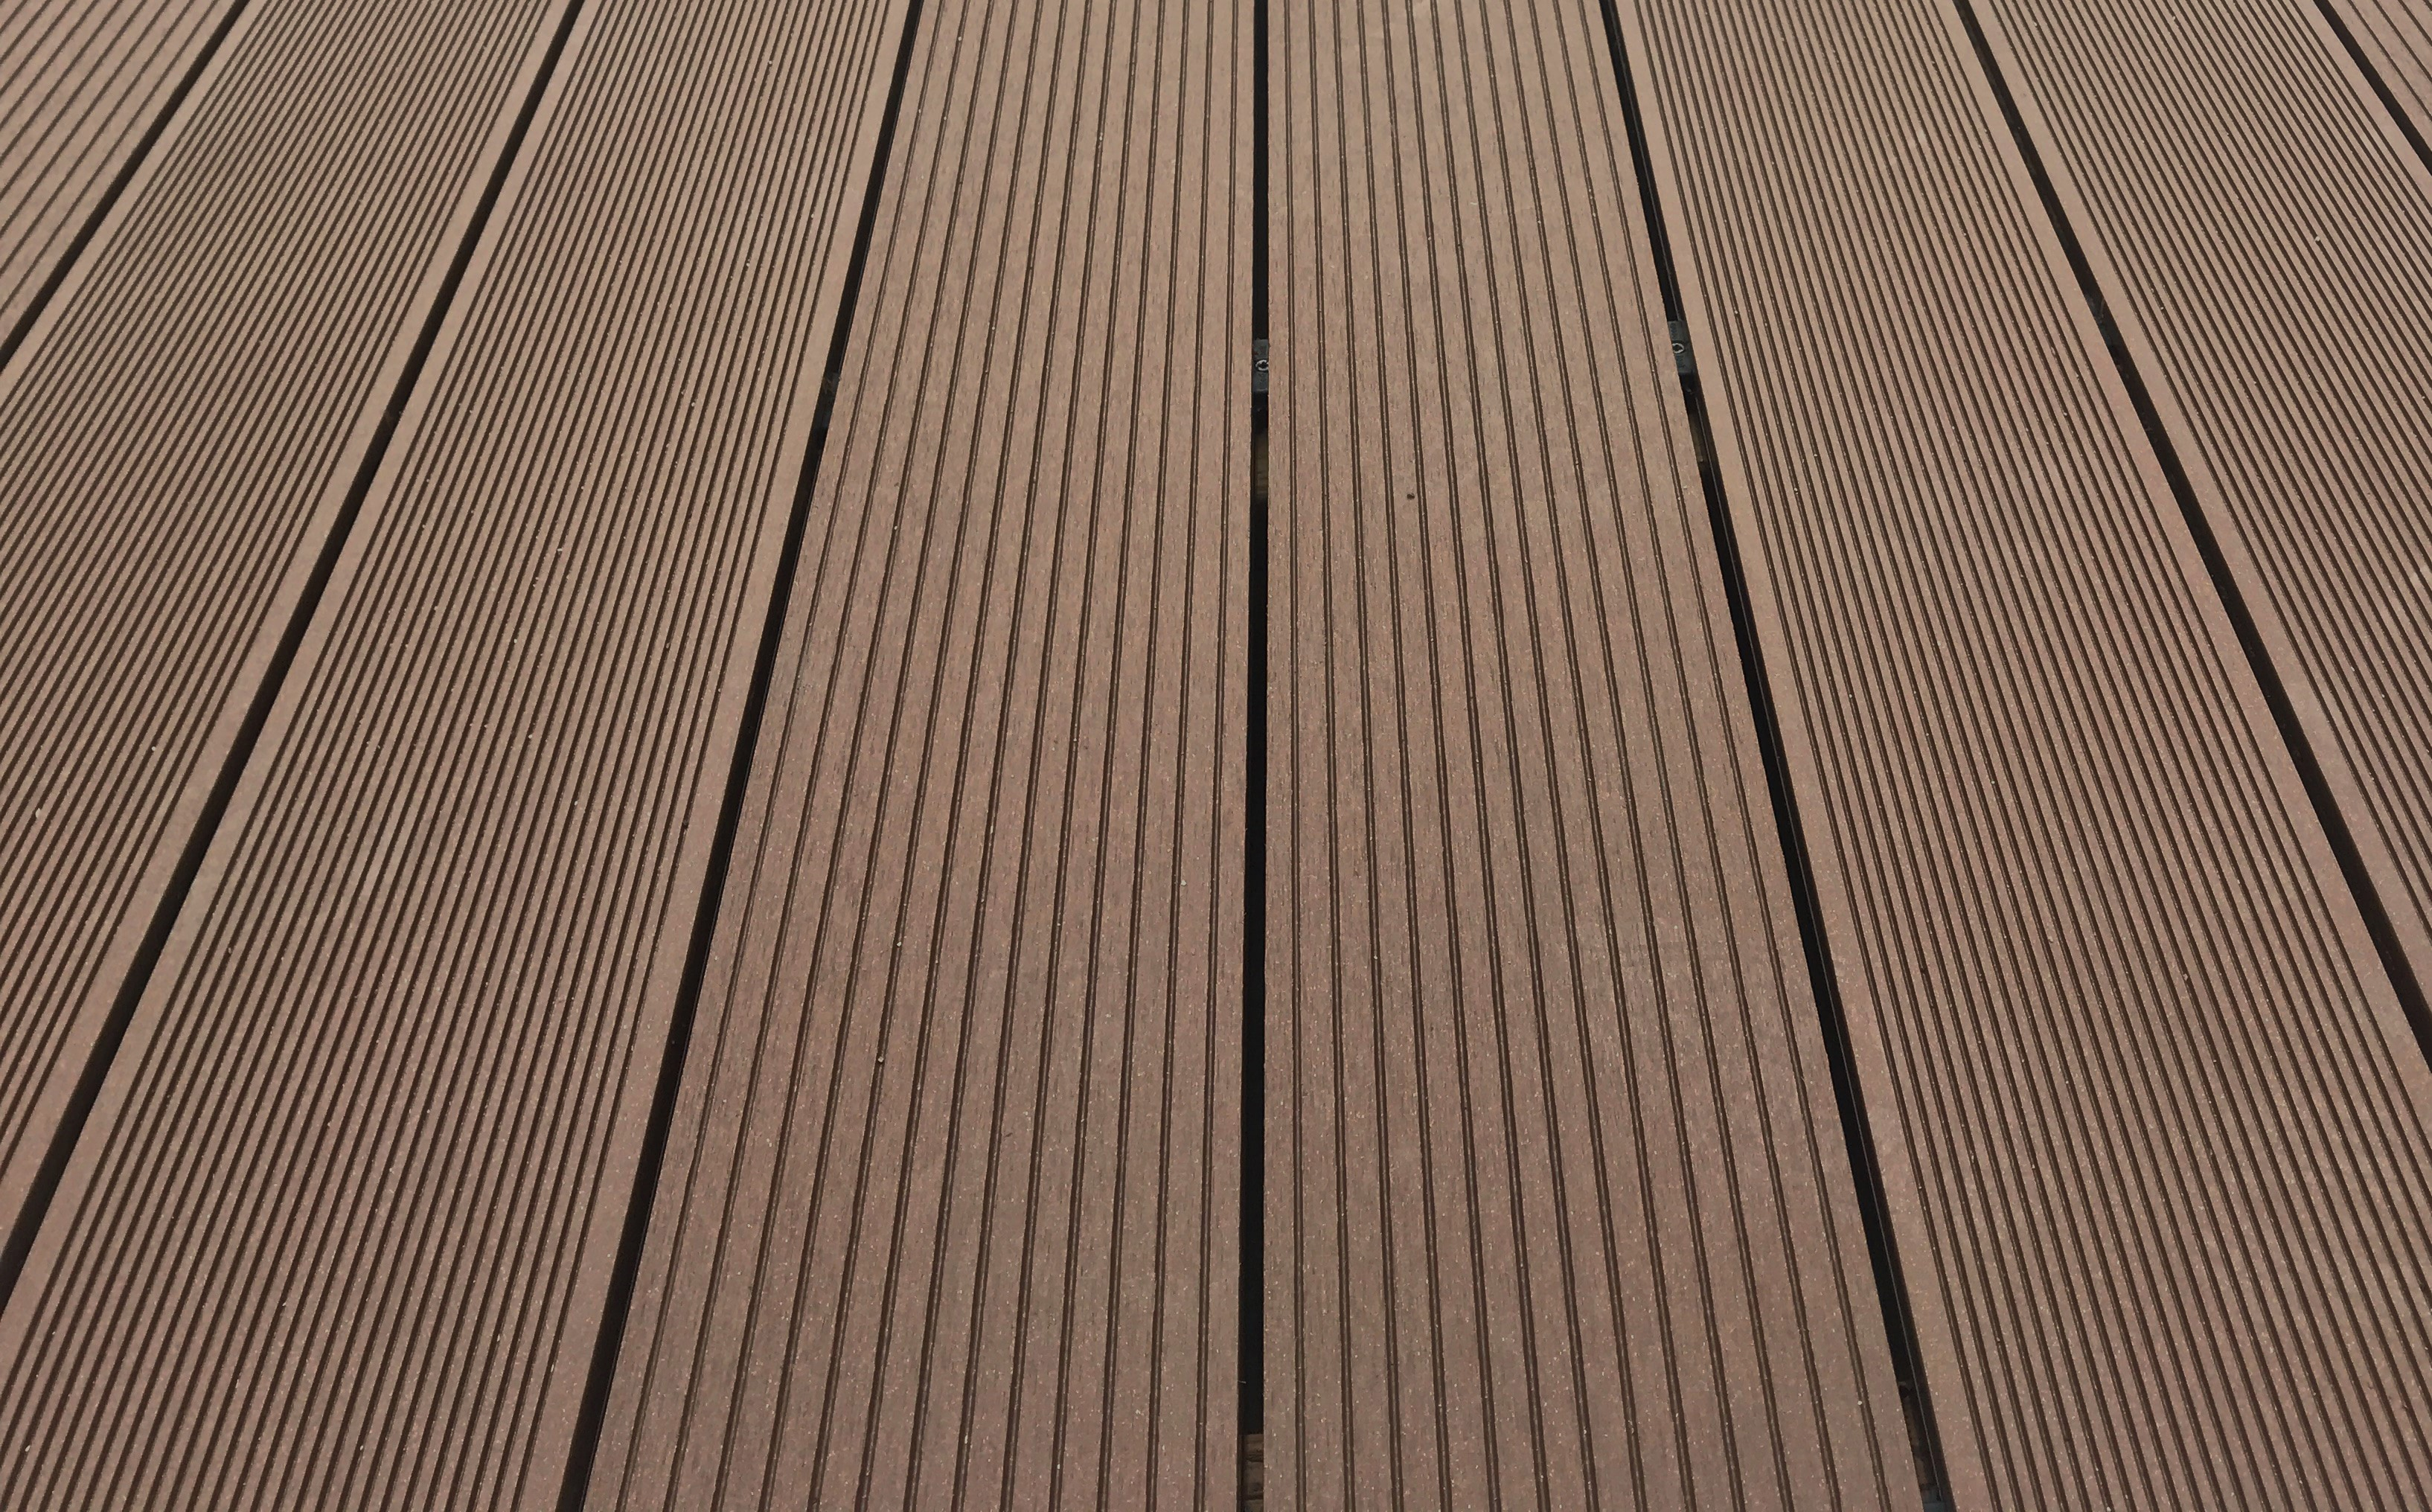 Ep decking ep wood plastic composite decking mocha hollow ep decking ep wood plastic composite decking mocha hollow grooved sanding 6x1x 12 baanklon Images